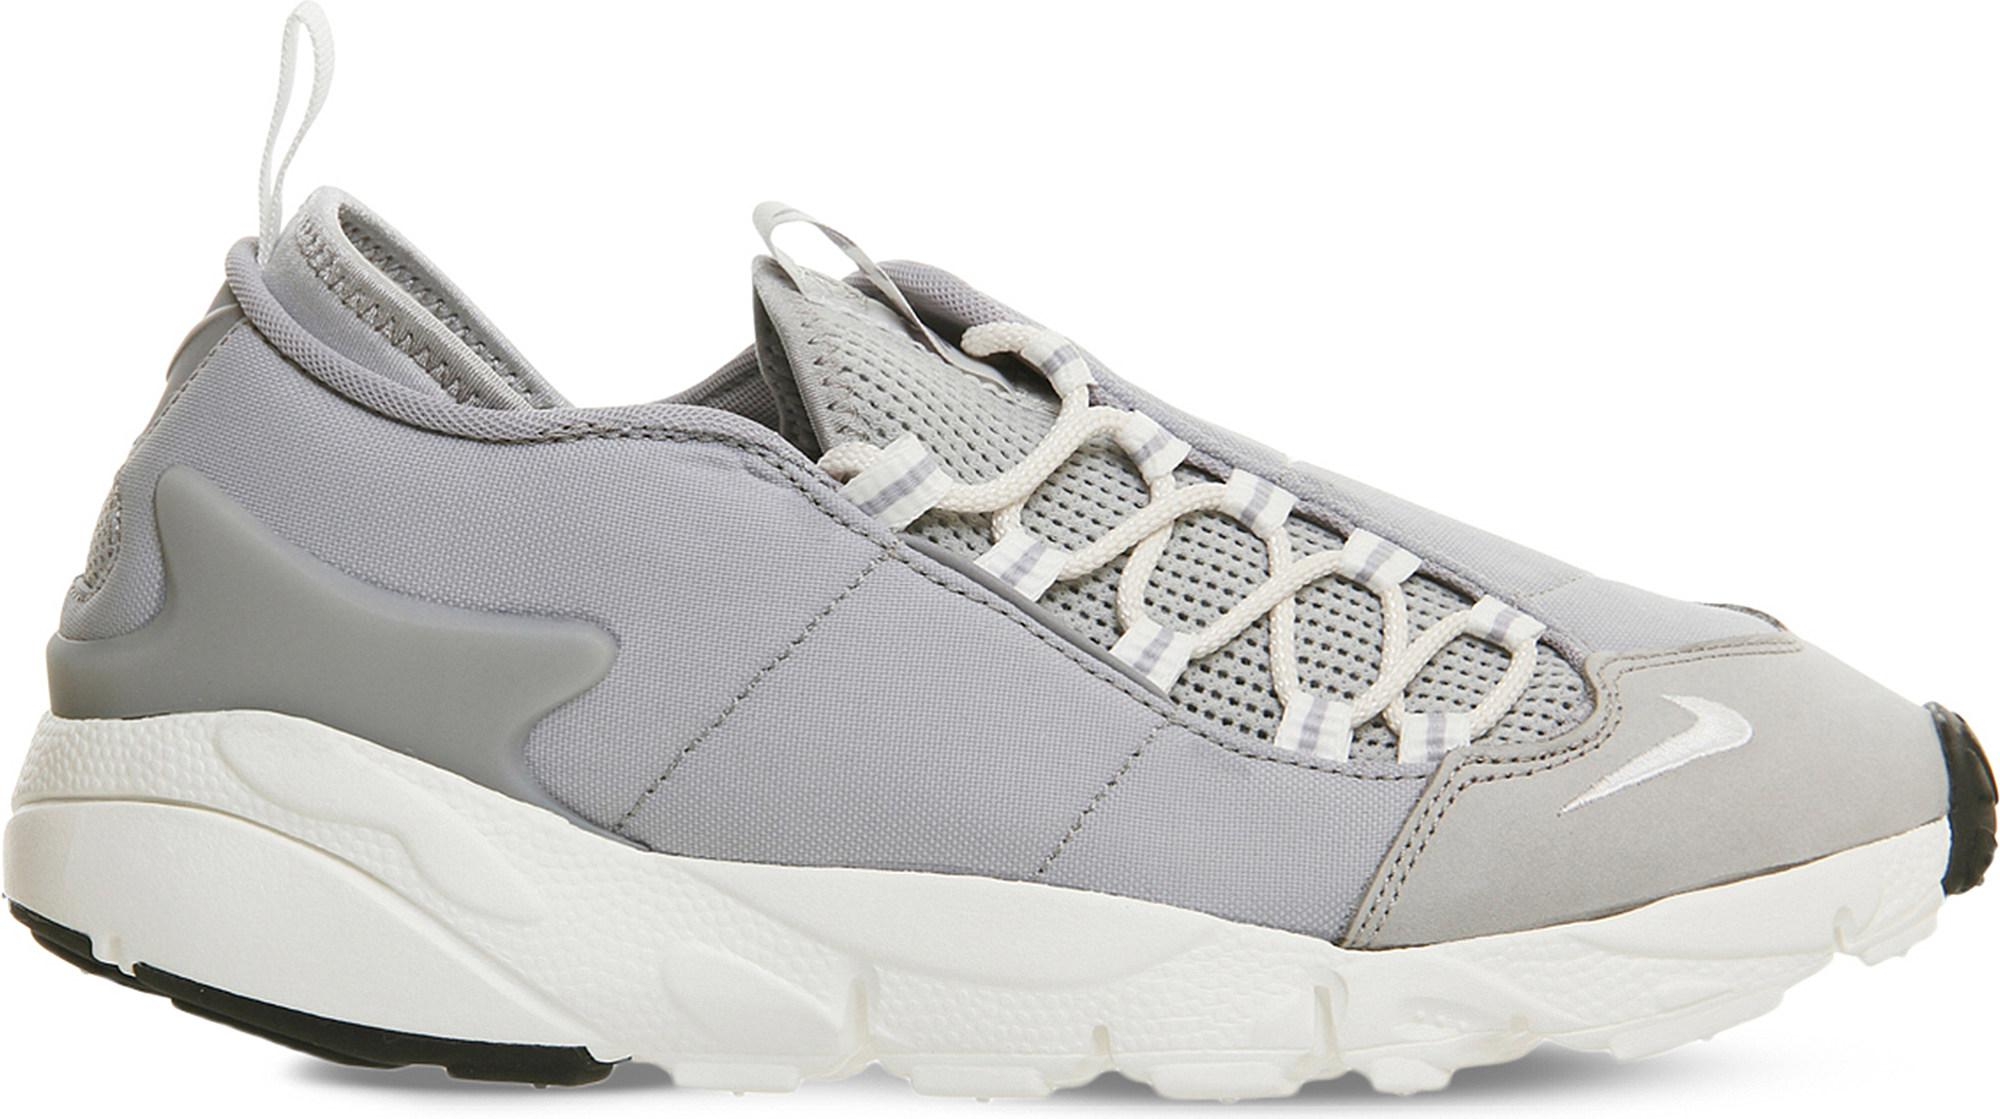 Discount Nike Wolf Grey White Air Footscape Leather And Mesh Trainers for Women Sale